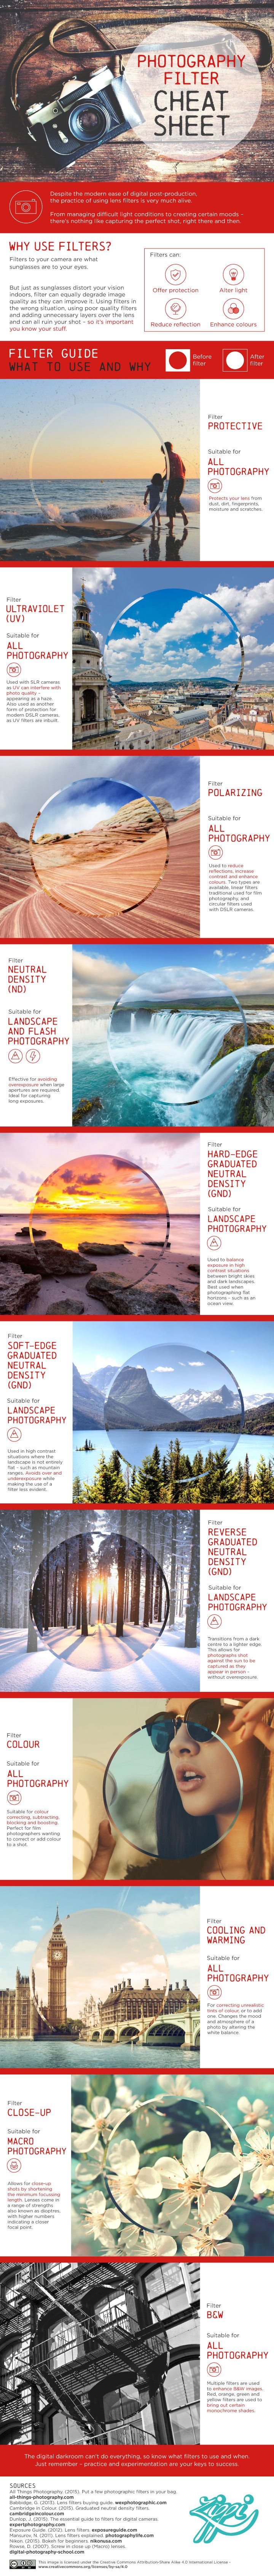 Photography Filter Cheat Sheet - Imgur    only ND filters are really needed. occasionally will use protective / UV filters, but most of this stuff can be done post production w/ software.